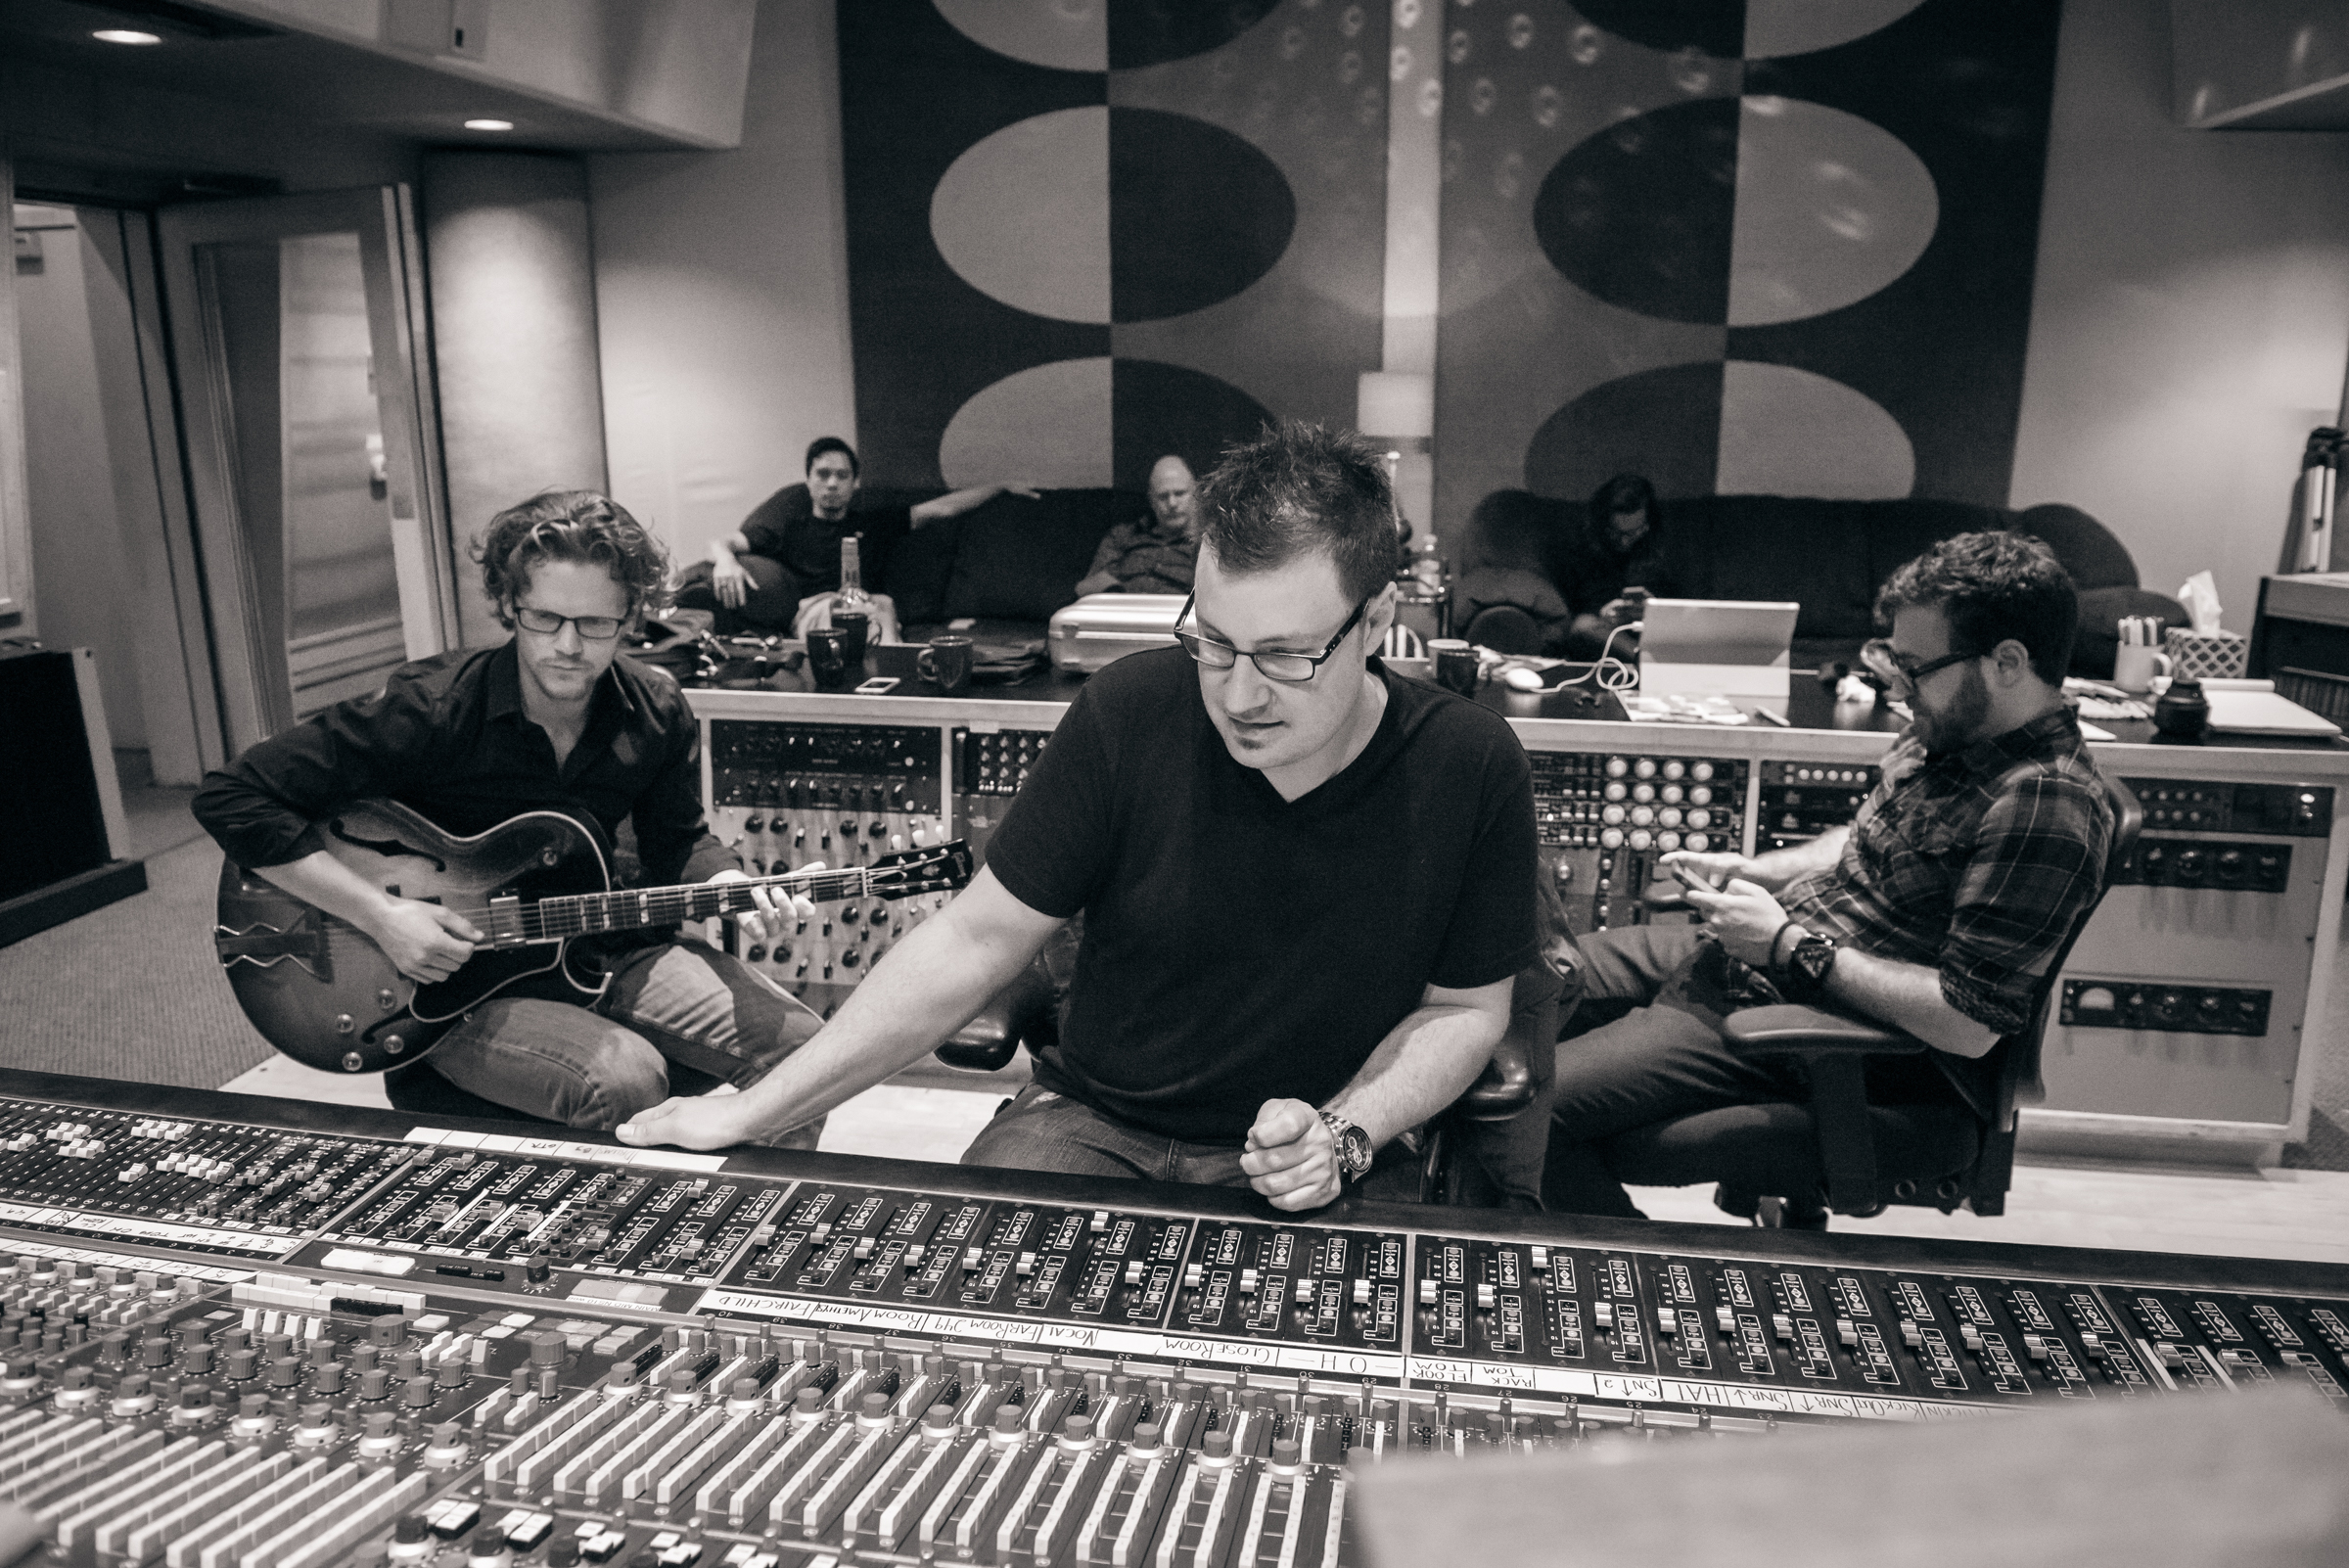 Strangers On A Saturday Night album session - Ocean Recording, Burbank  Photo Credit - Michael Stever